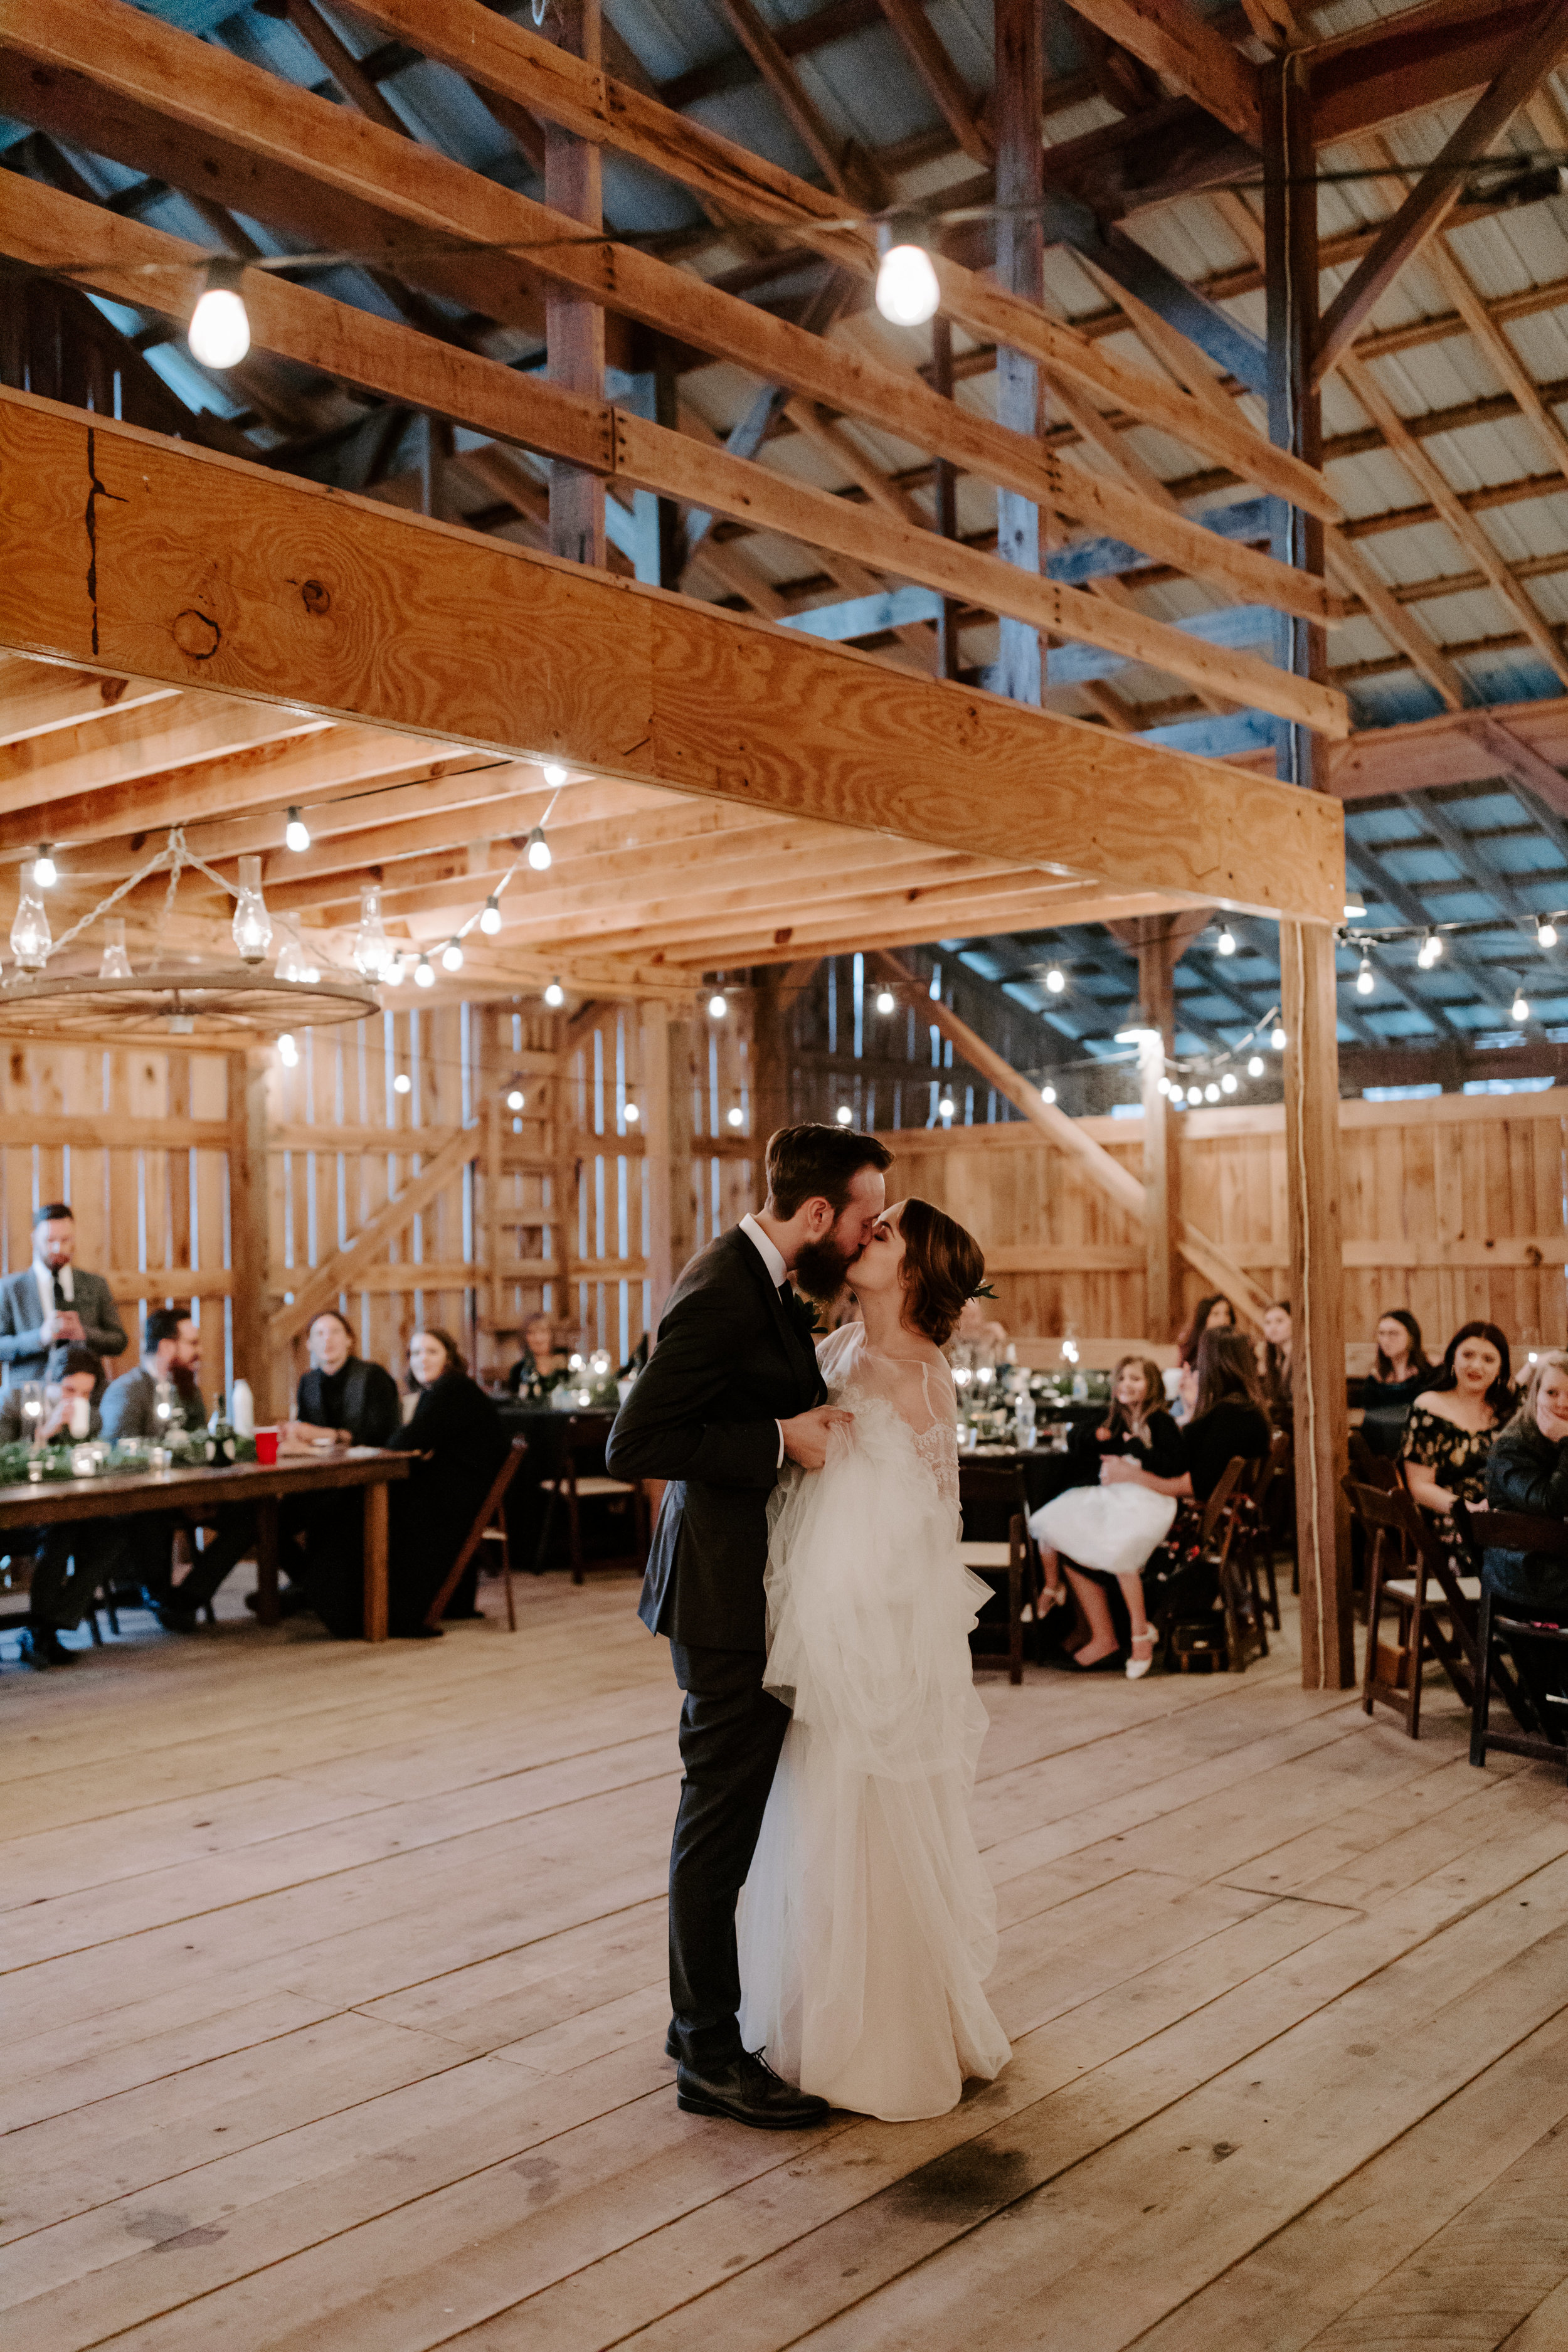 Emotional first dance pictures